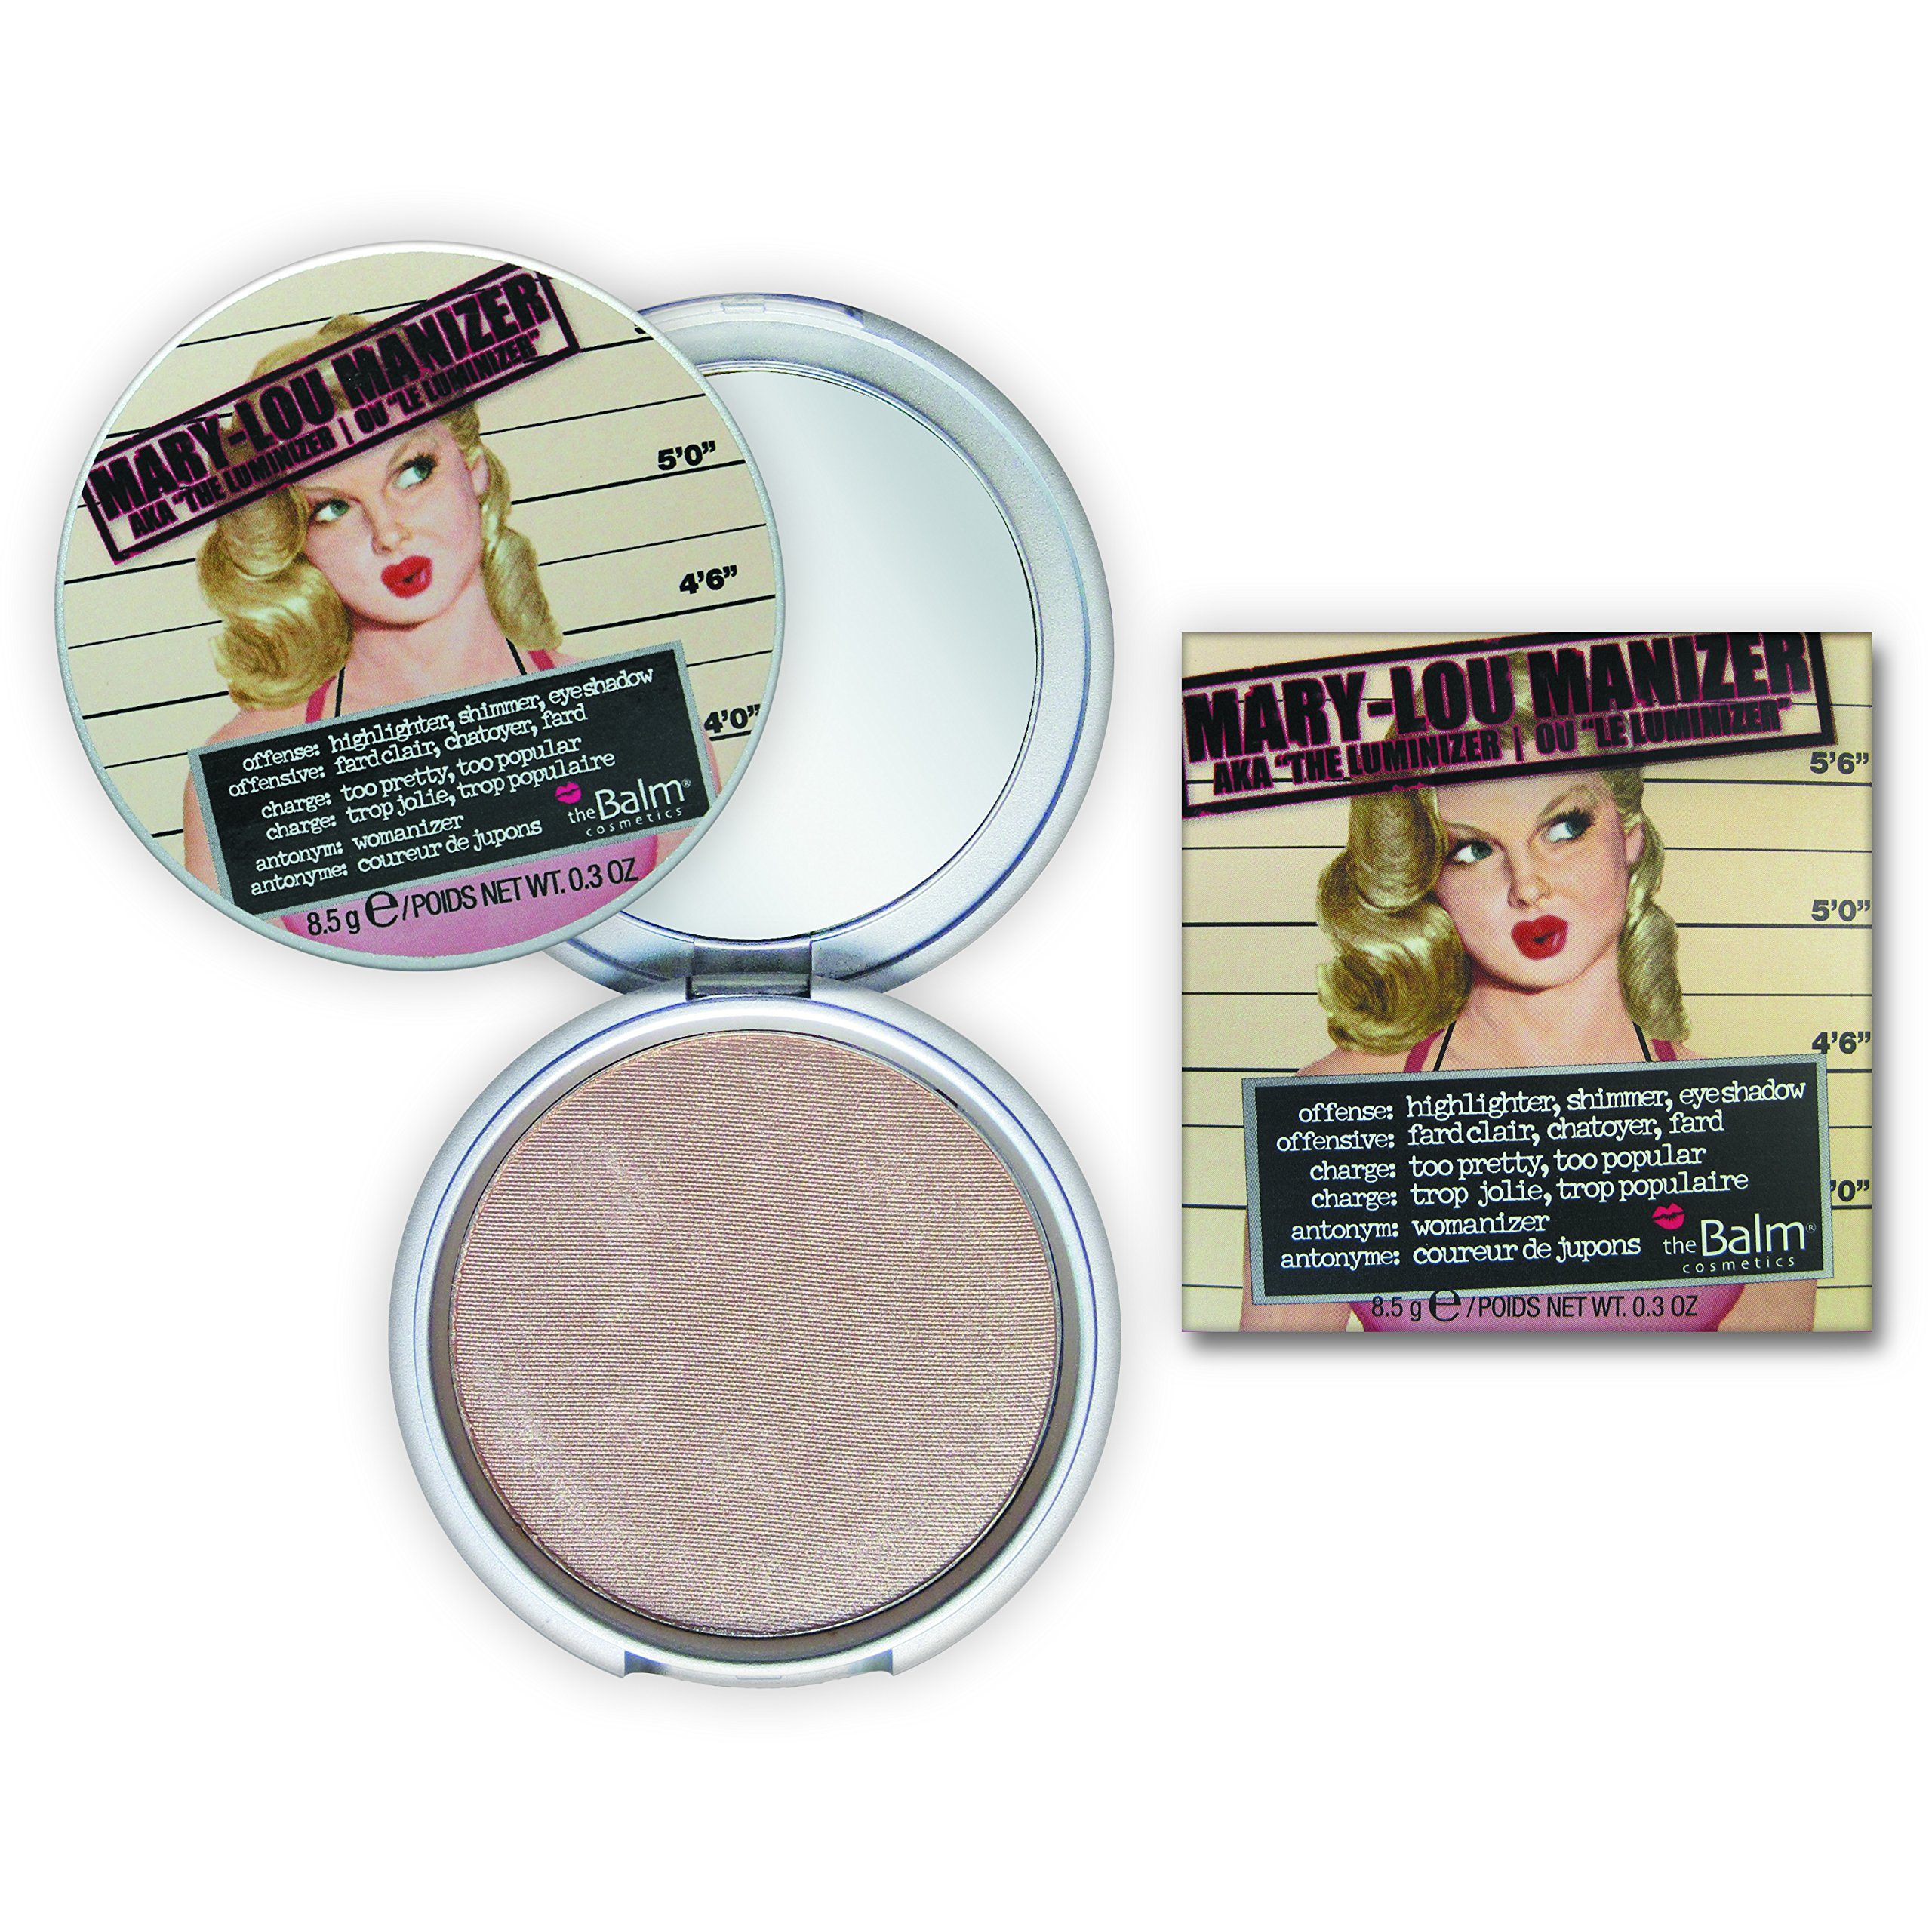 Mary-Lou Manizer Honey-Hued Luminizer, Highlighter, Shadow & Shimmer, Subtle Glow, .32 Oz by theBalm